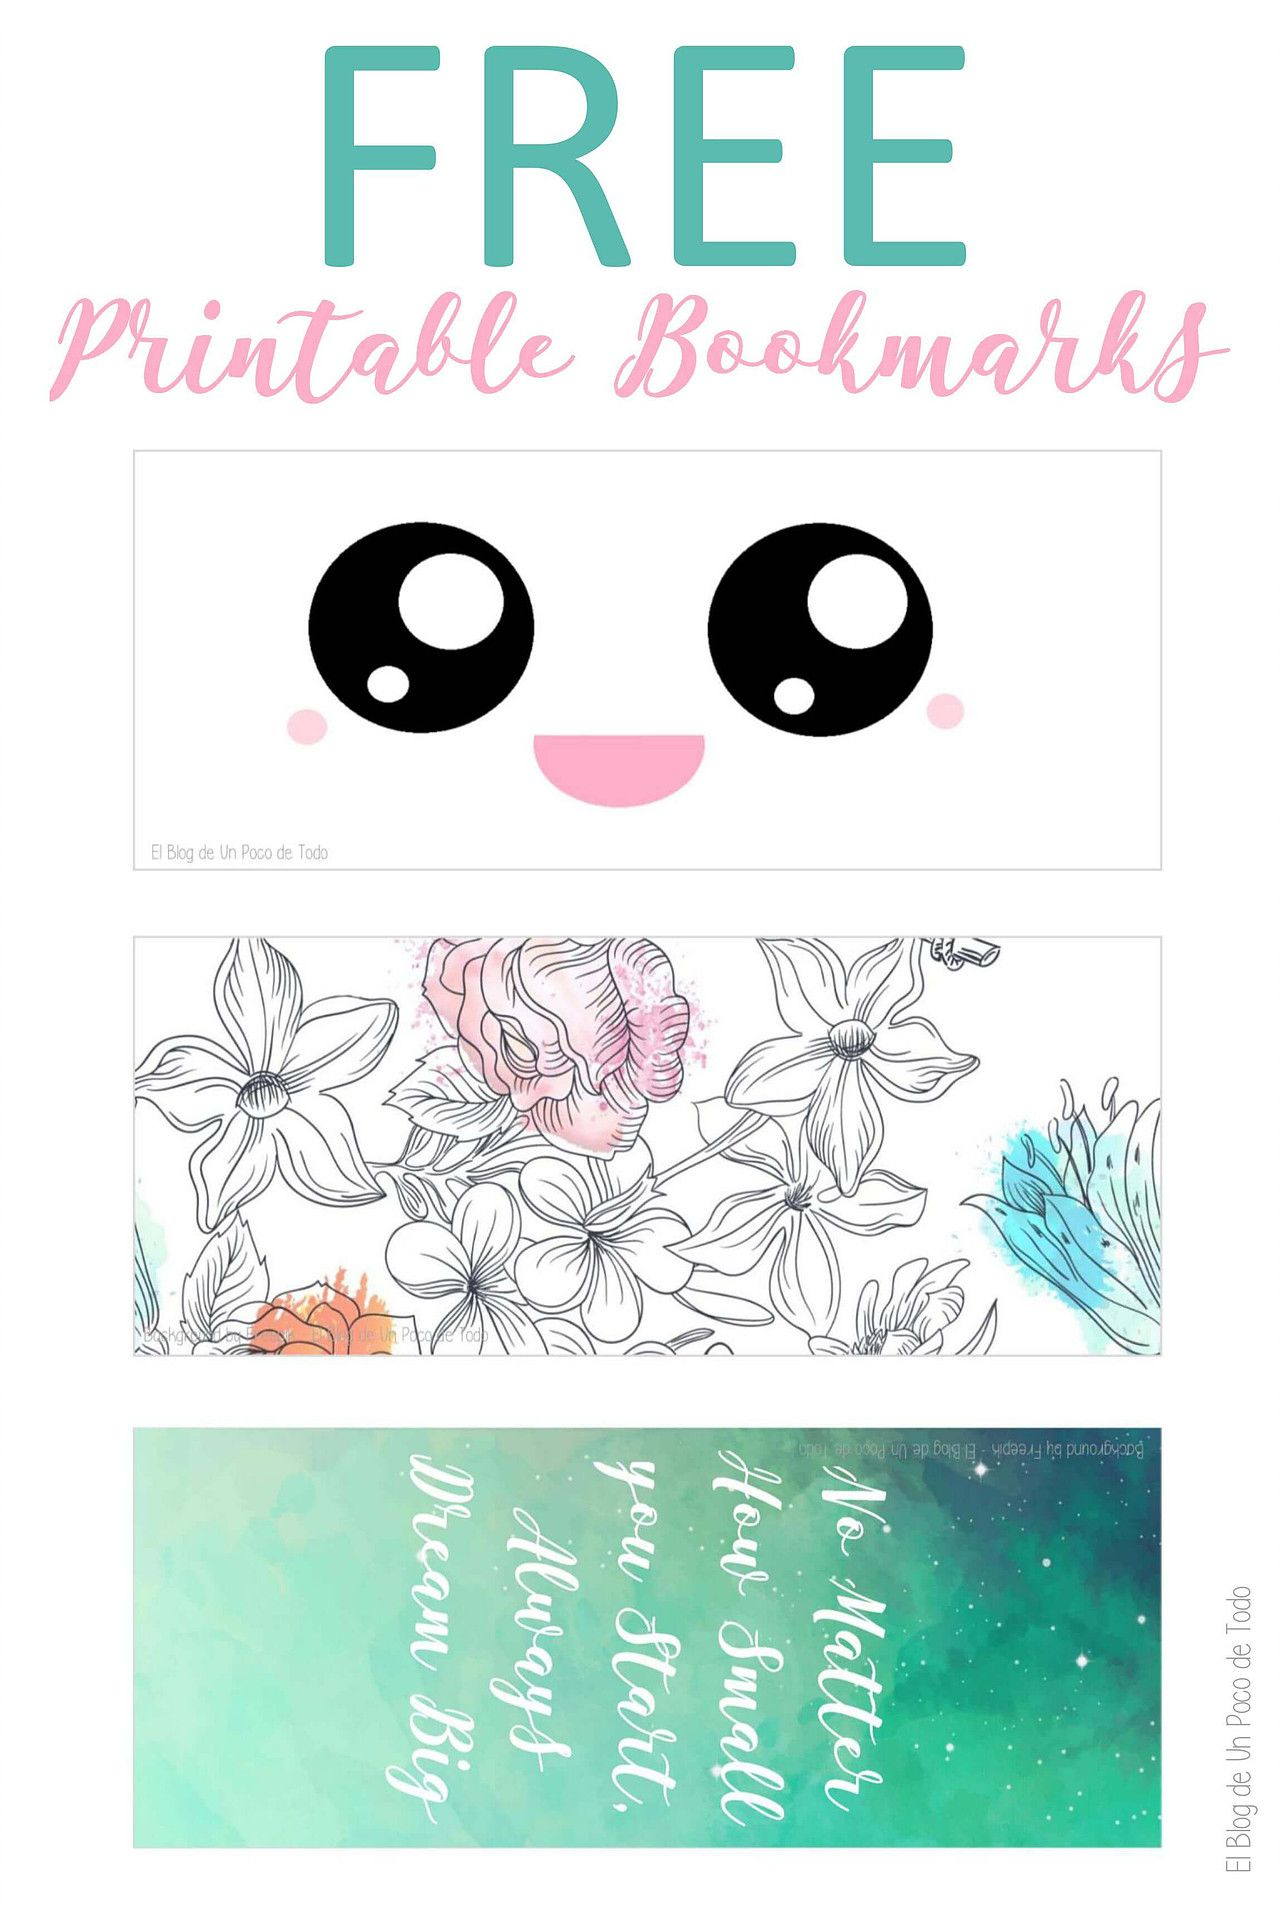 graphic about Cute Bookmarks Printable titled Totally free Printable Bookmarks No cost Printables Free of charge printable